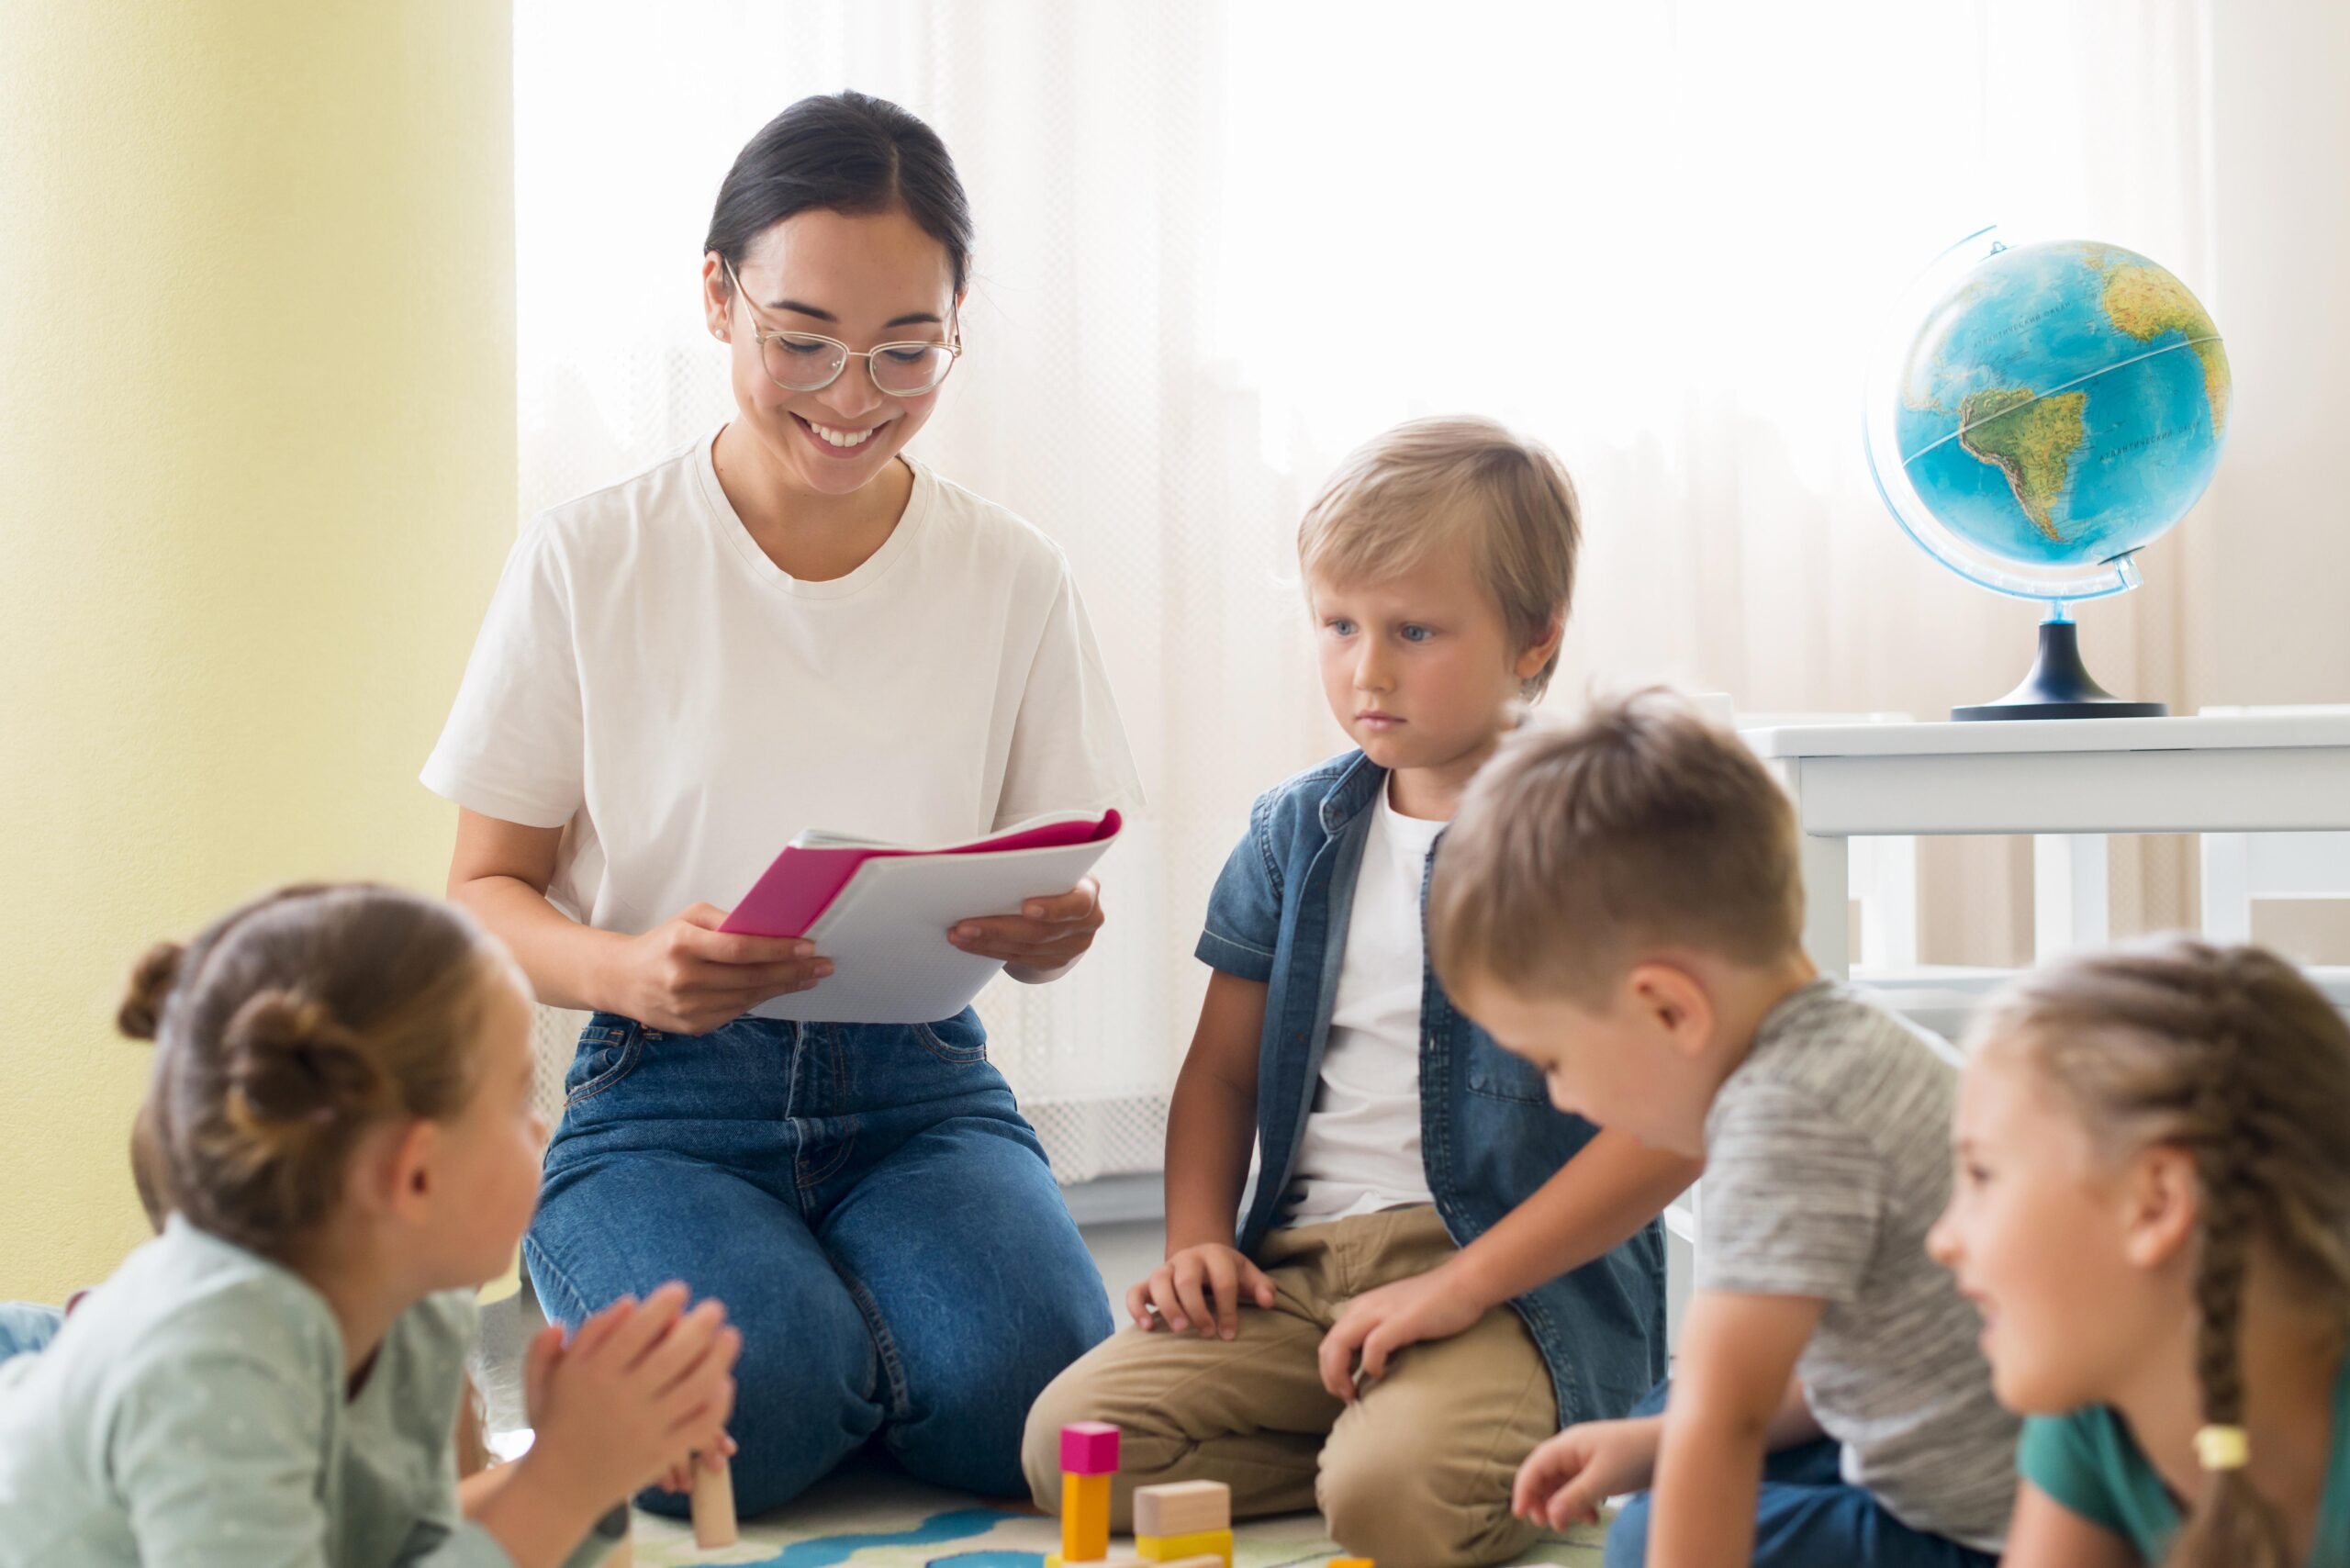 Comprehensive Guide To Starting An Auspicious Career With Child Care Certification